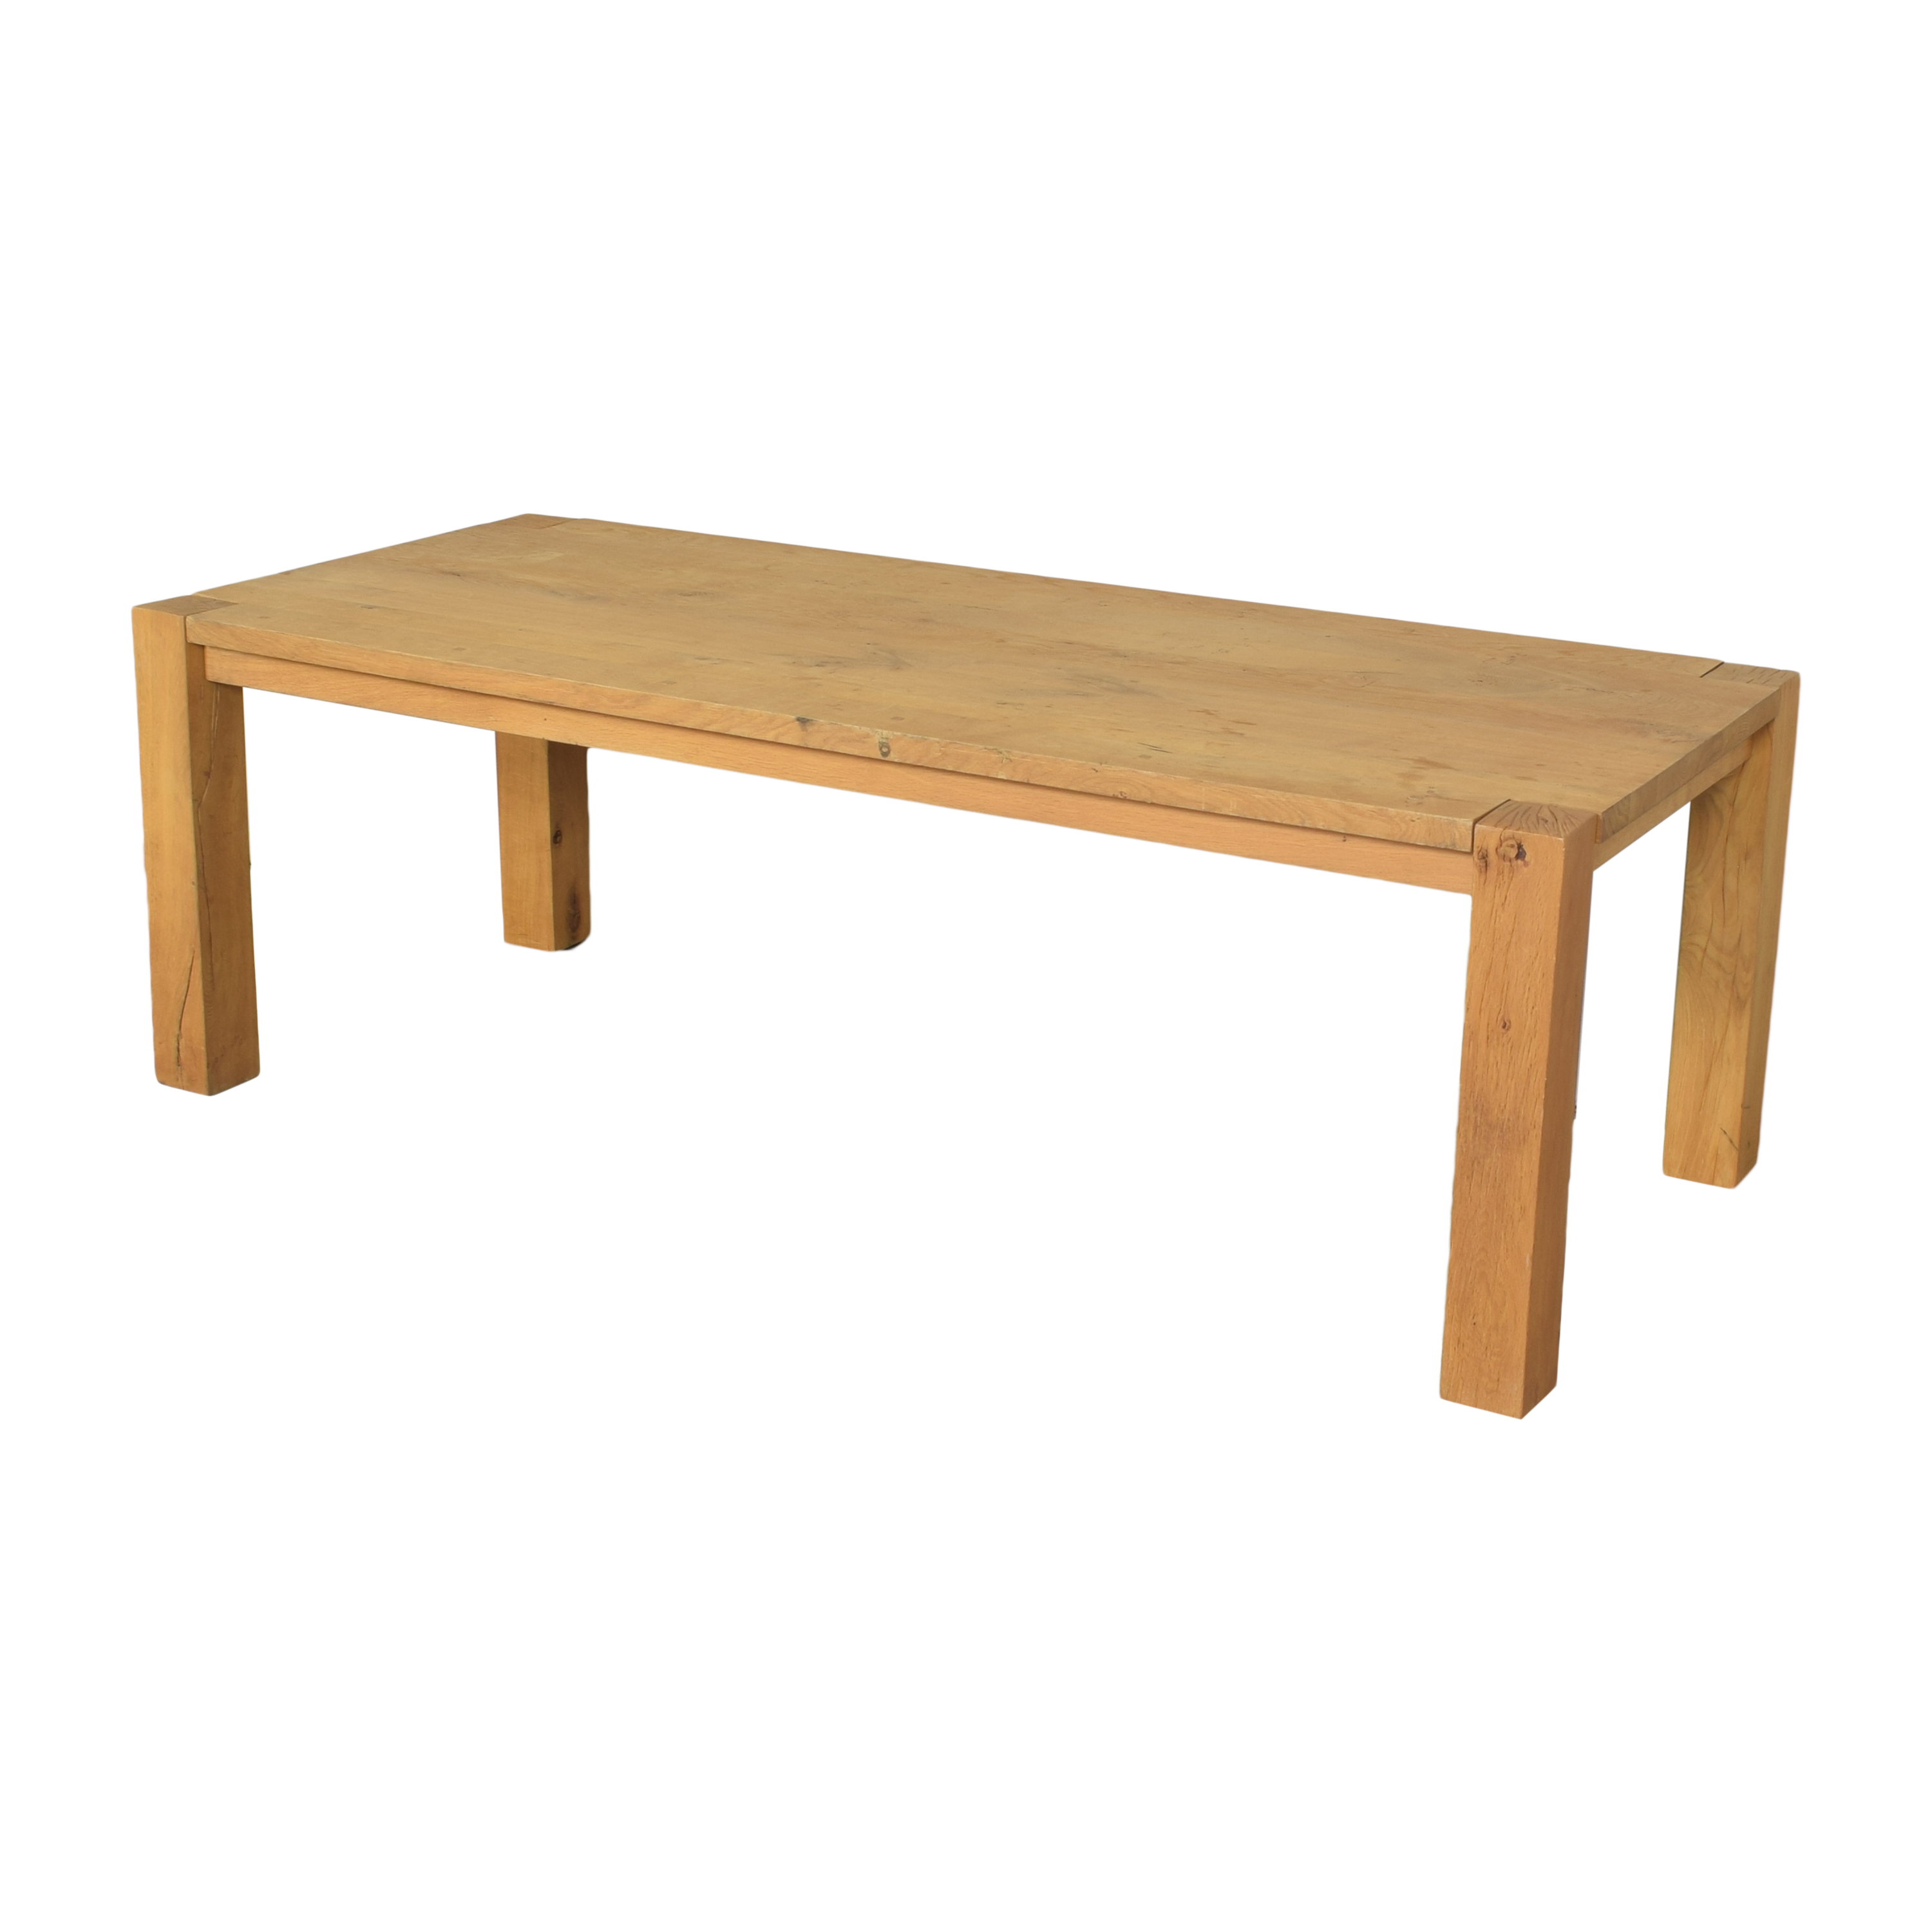 Yask Yask Ylifanti Dining Table Dinner Tables